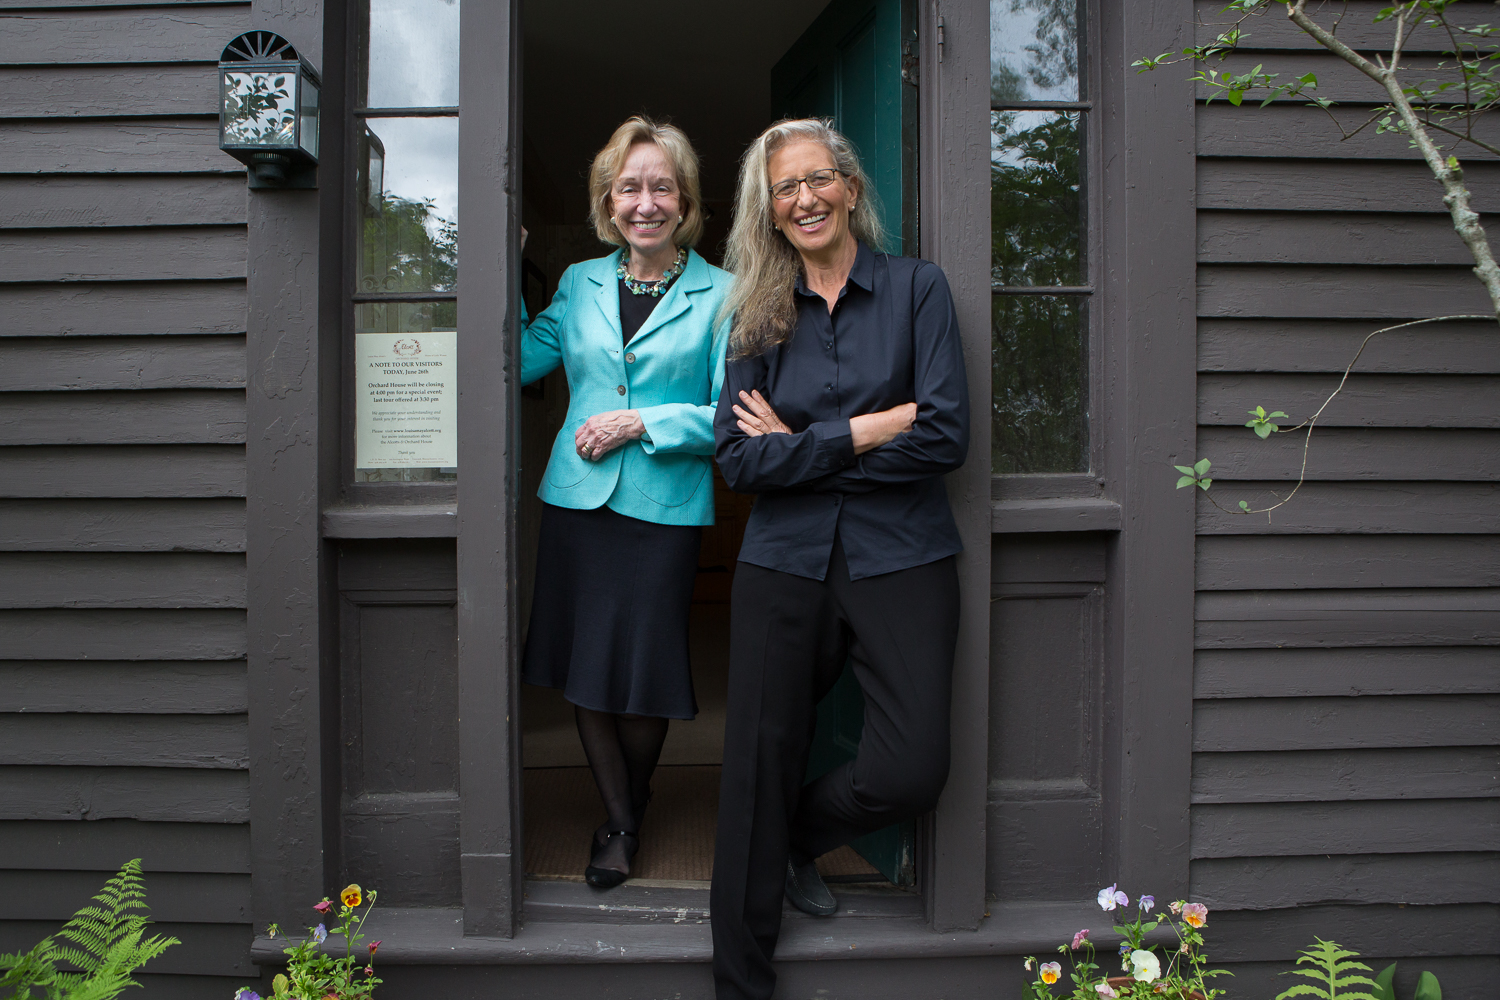 Concord, MA., June 26, 2012: Historian Doris Kearns Goodwin (cq) and photographer Annie Leiboviz (cq) attend the sold-out {quote}A Conversation with Annie Leibovitz and Doris Kearns Goodwin{quote} talk at the Louisa May Alcott's Orchard House in Concord, MA. Doris Kearns Goodwin wrote the introduction for Leibovitz's book Pilgramage which explores many sites in America including Thoreau's cabin on Walden Pond as well as The Orchard House.. Photo by Evan McGlinn for The Boston Globe.